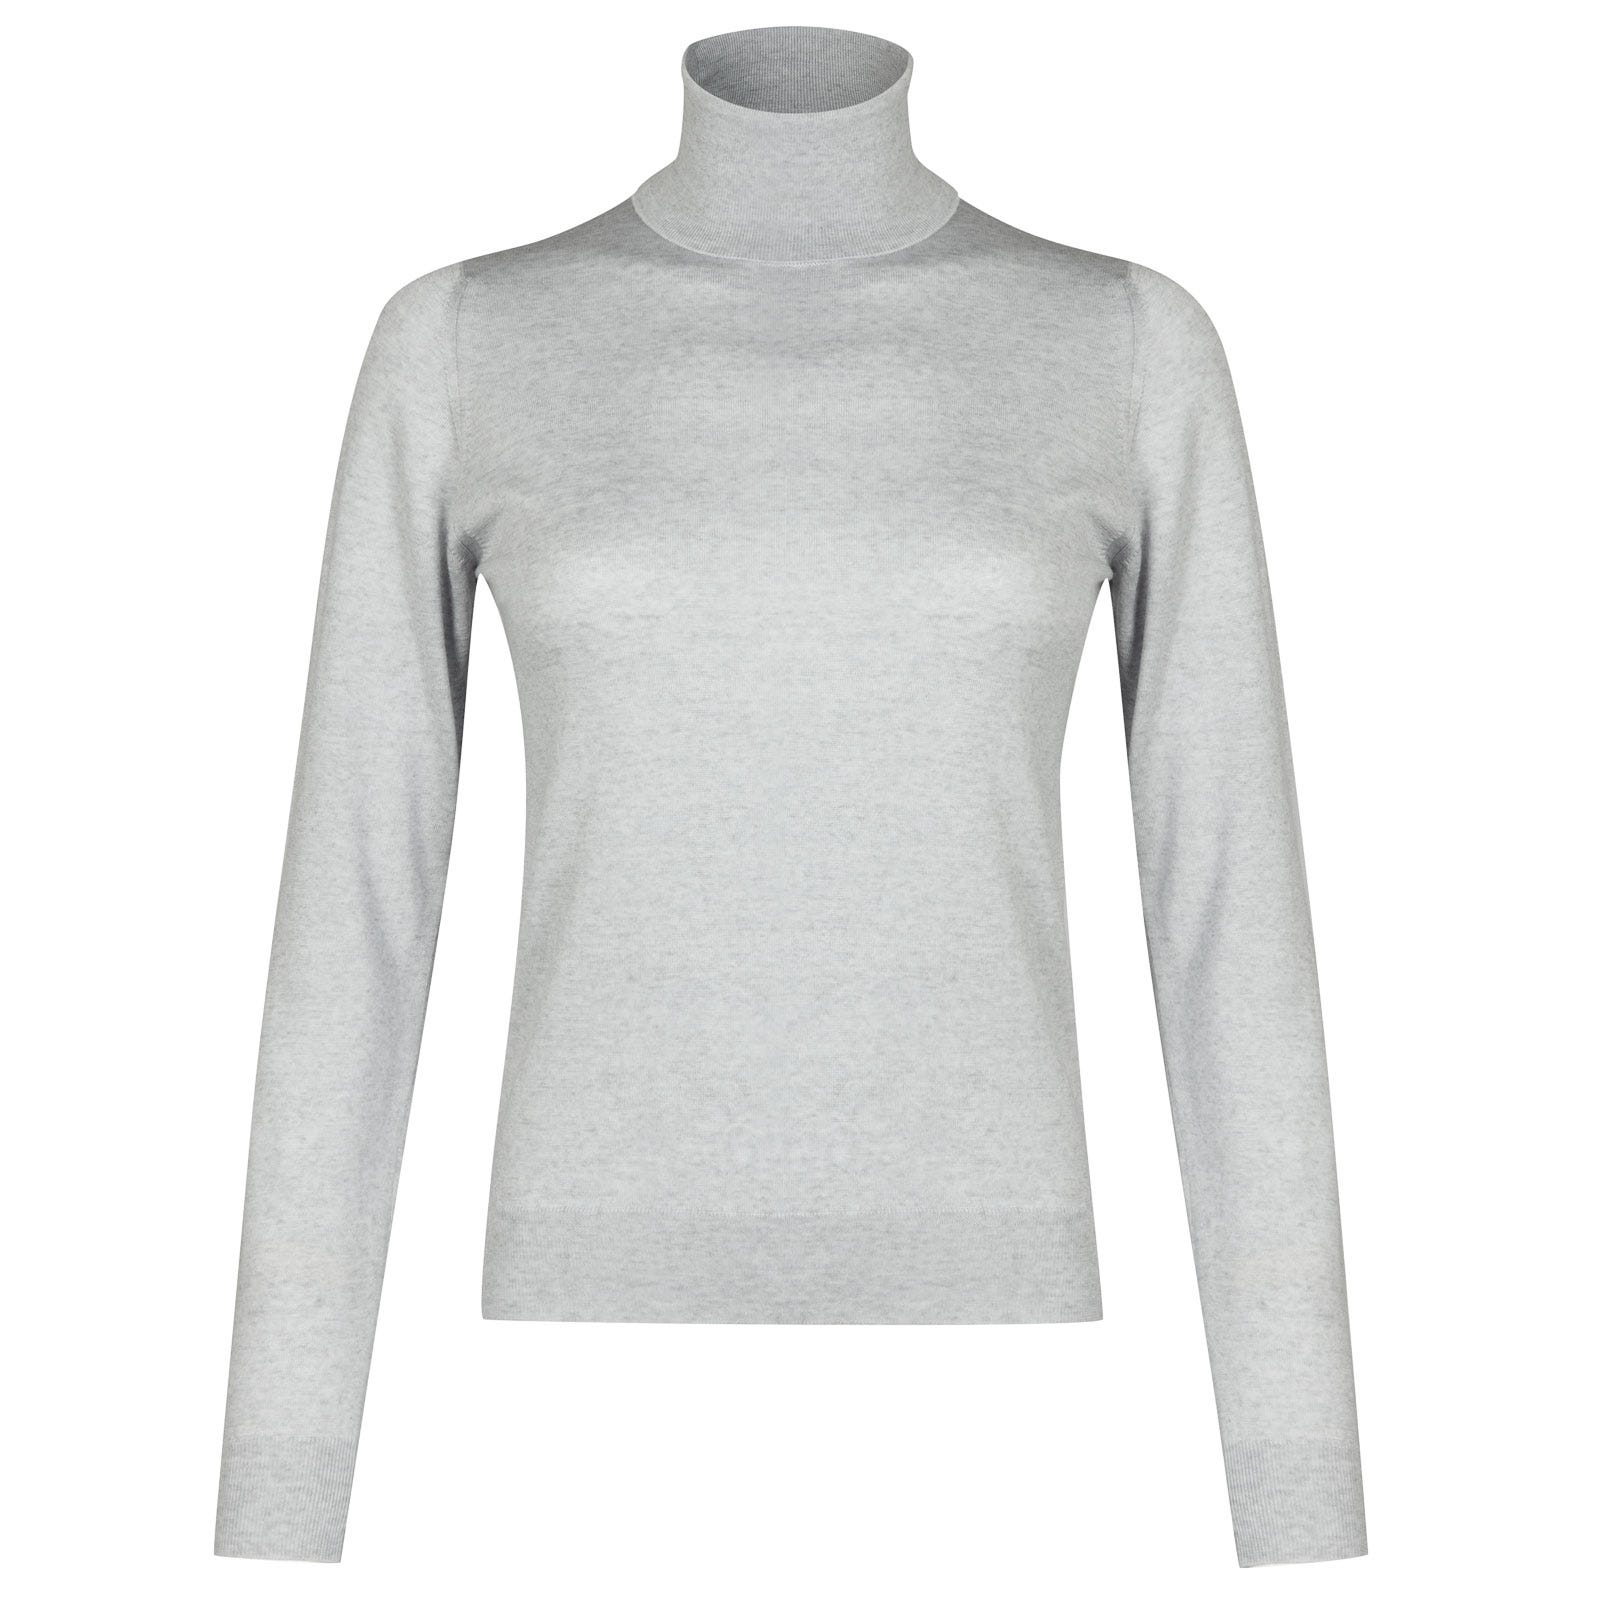 John Smedley siena Merino Wool Sweater in Bardot Grey-M